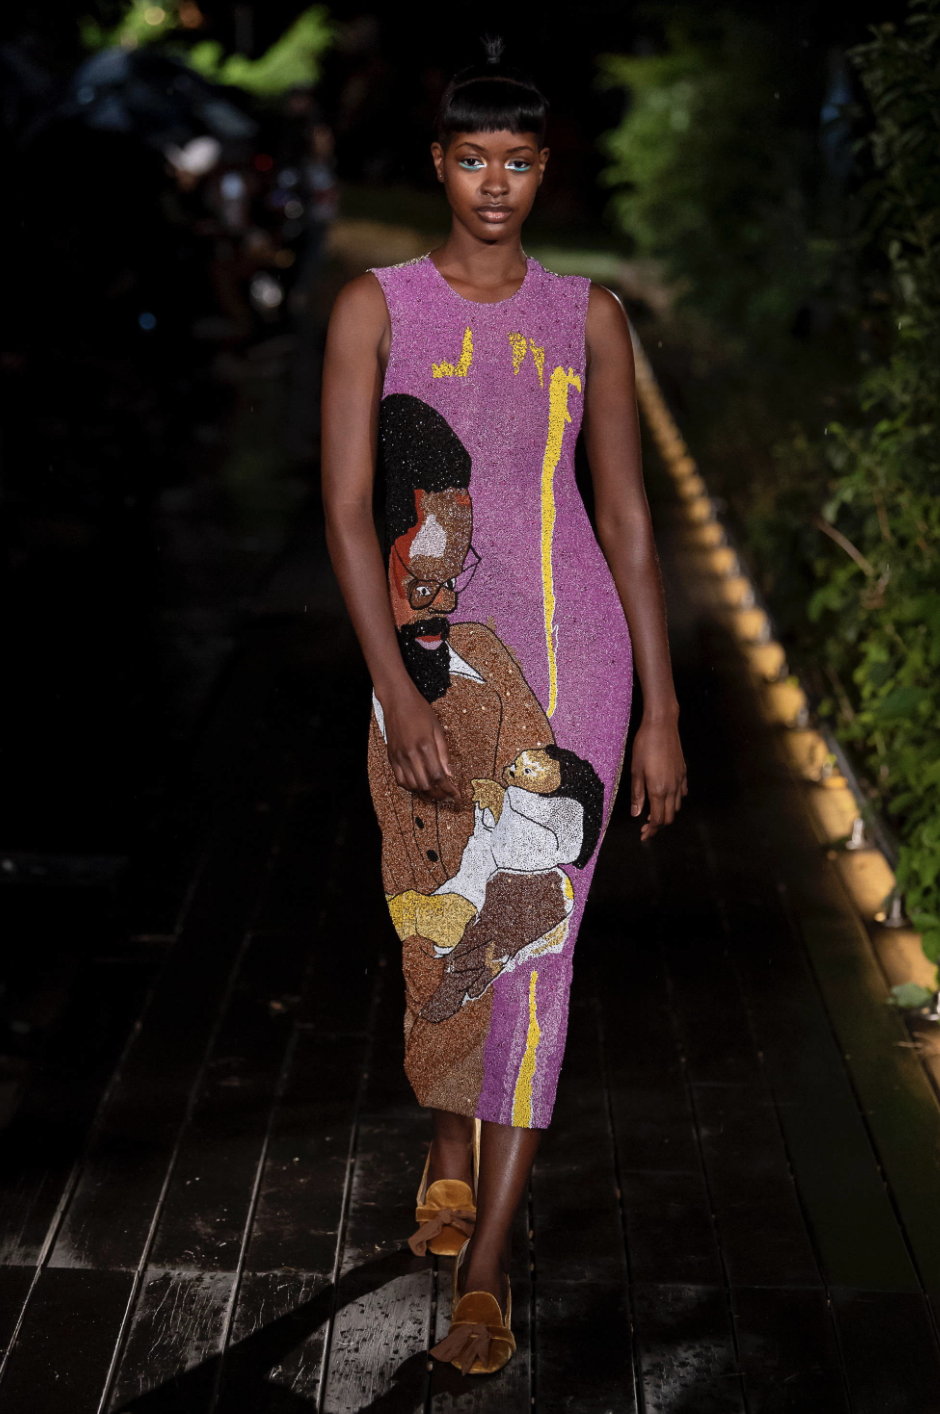 Model Sira P. Kante wearing Pyer Moss Spring 2019 with Derrick Adams and shoes by Brother Vellies / Photo Courtesy Yannis Vlamos / Indigital.tv